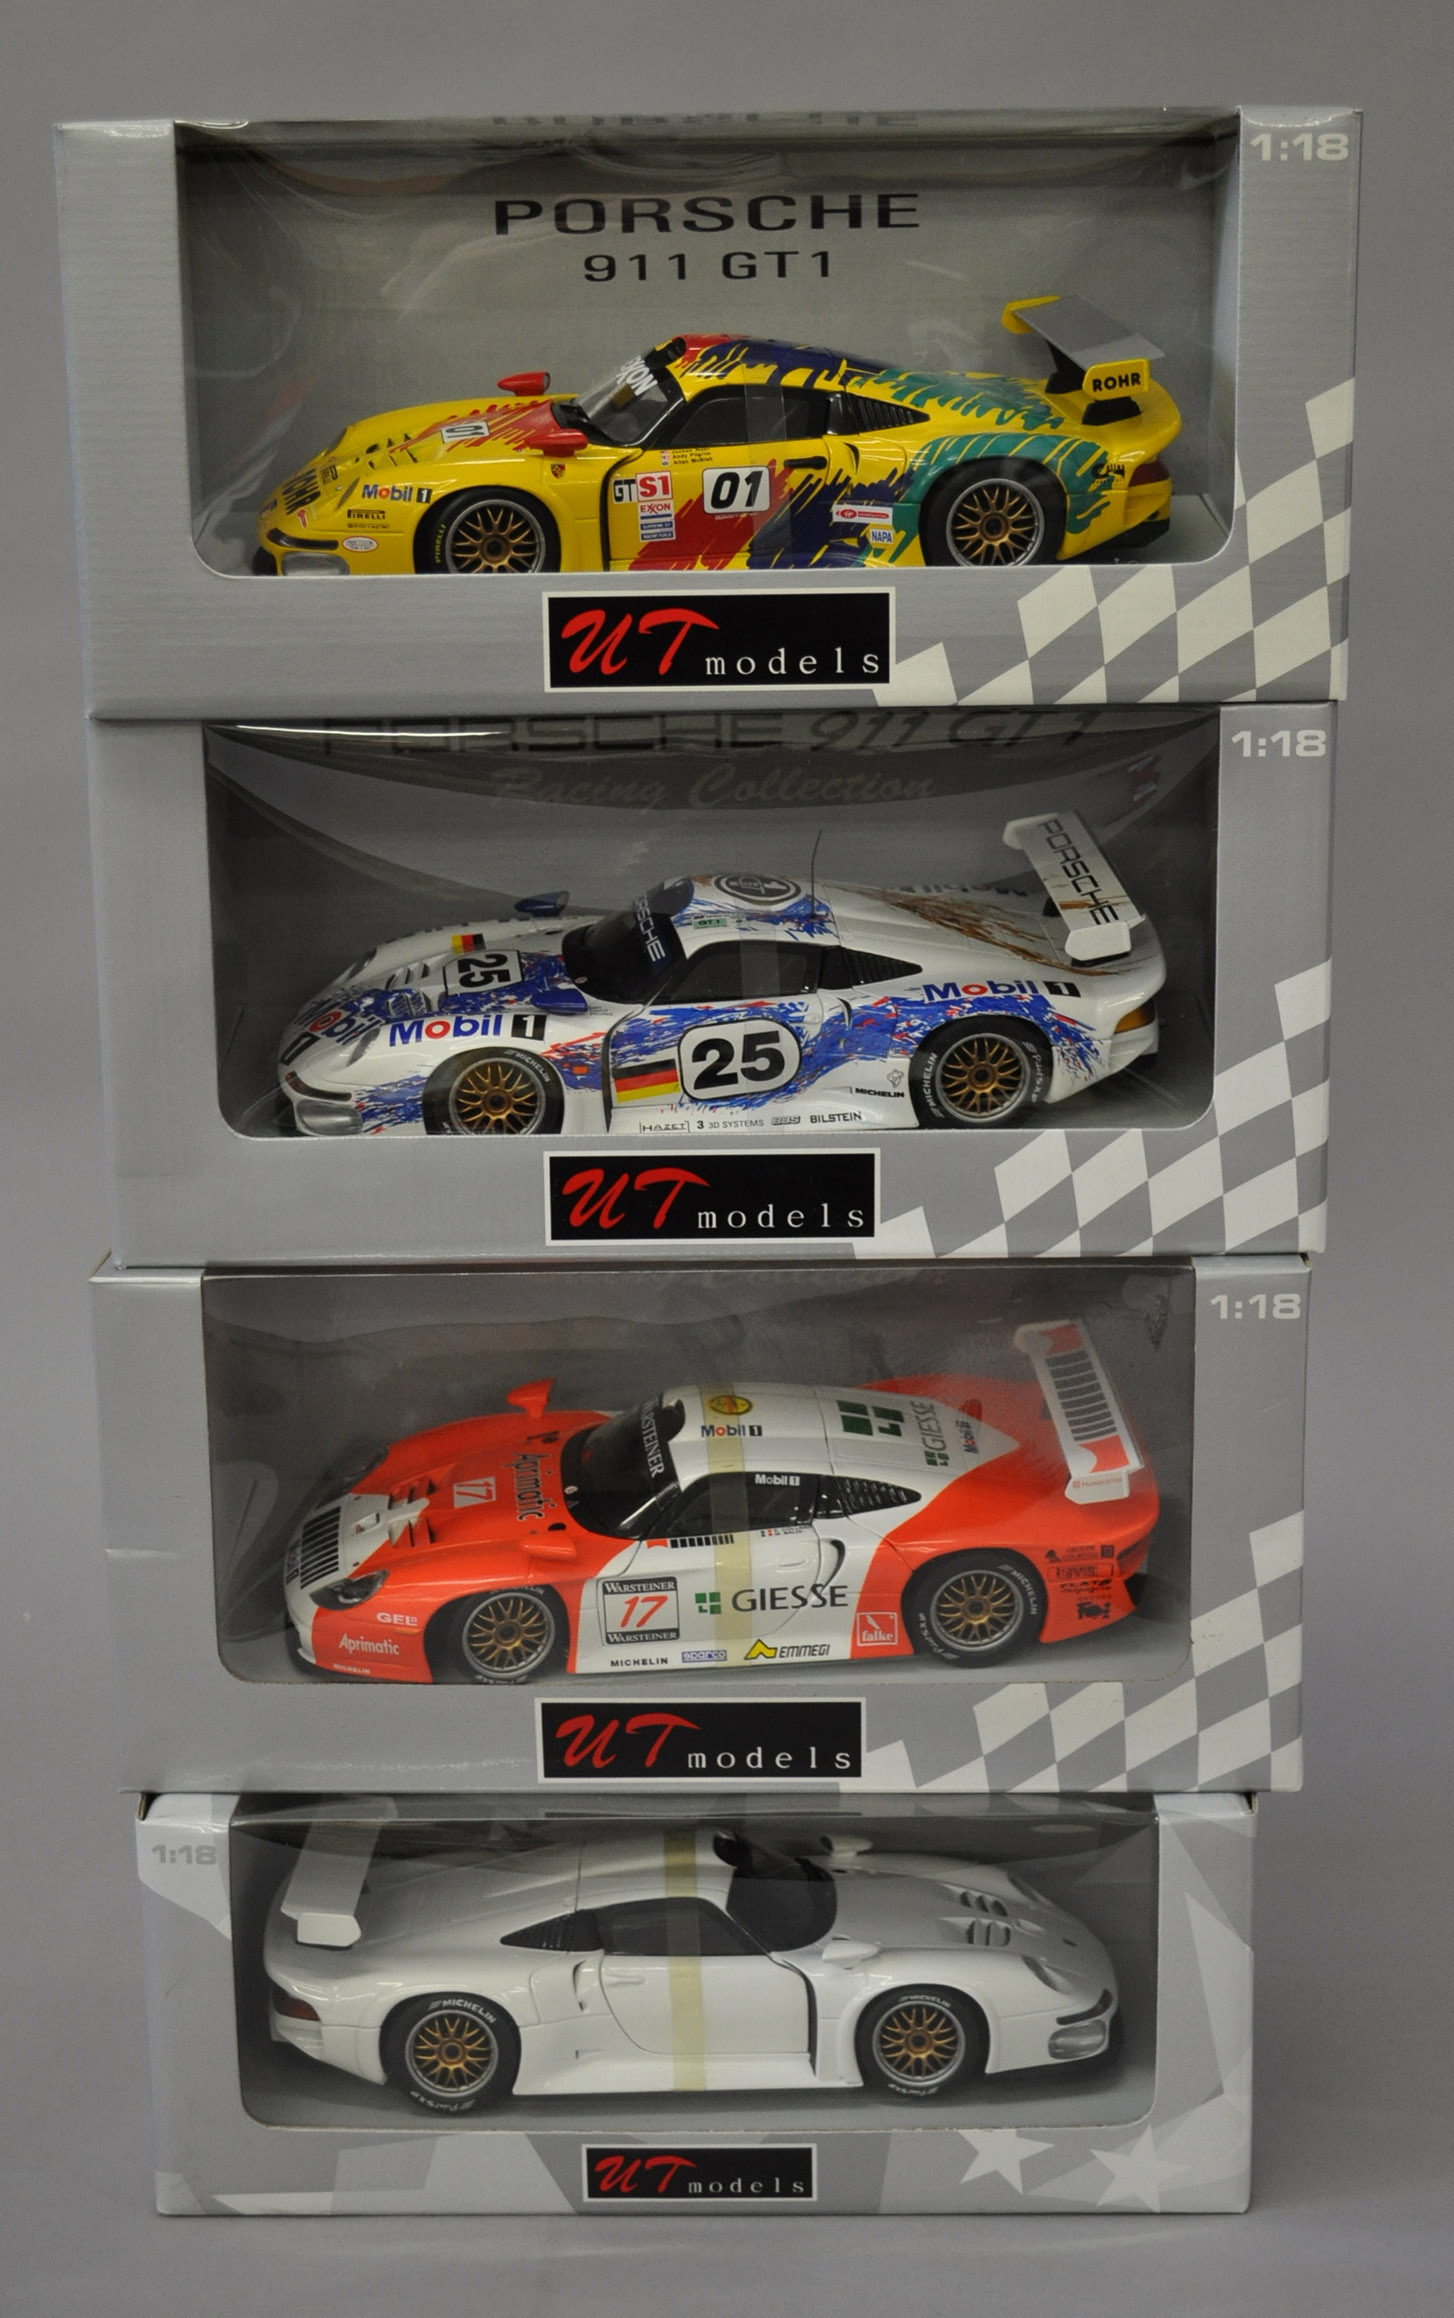 330-20141151841_original Exciting Anson Racing Porsche 911 Gt1 Cars Trend